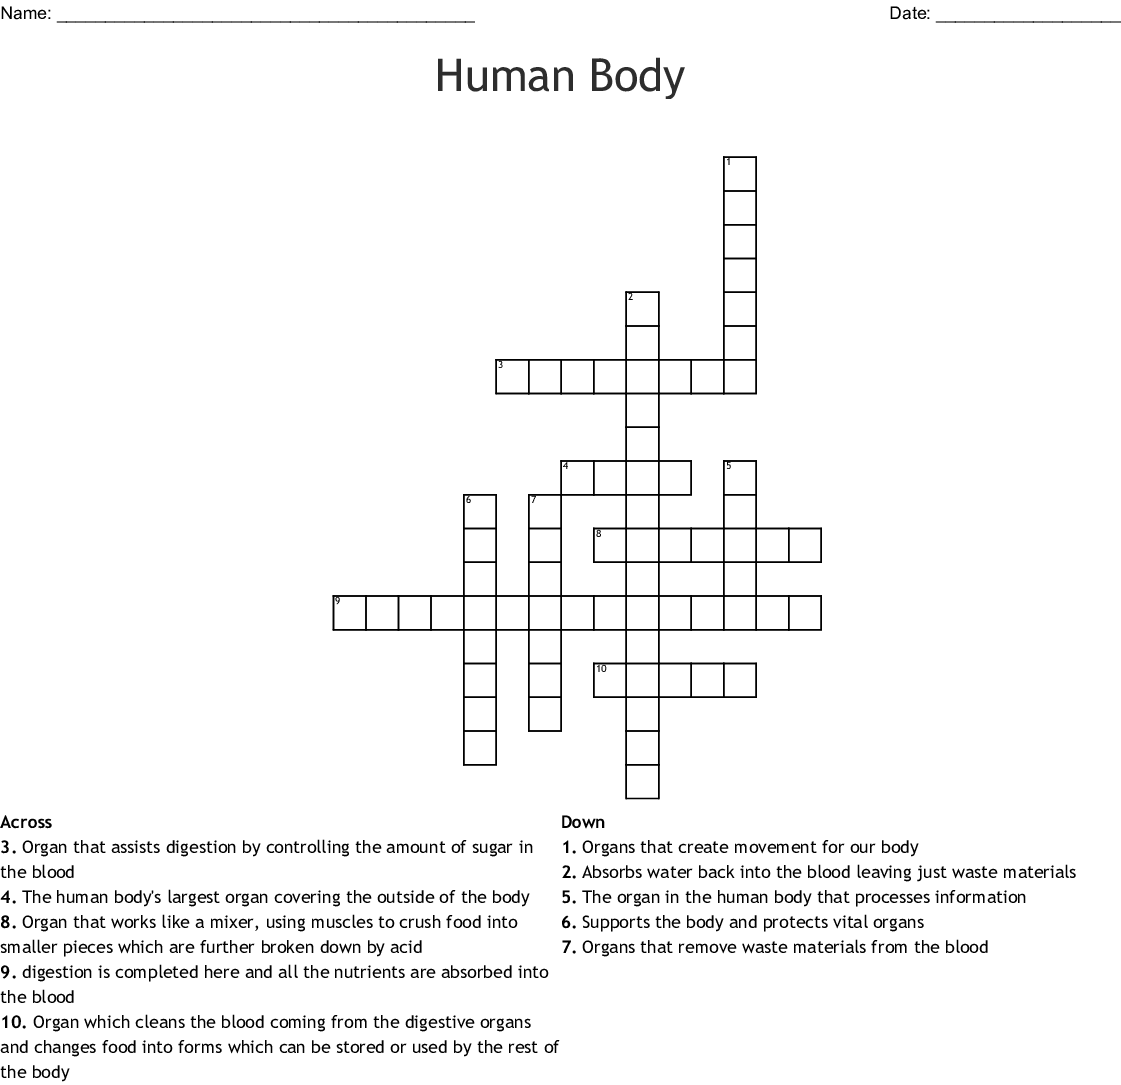 Human Body Crossword